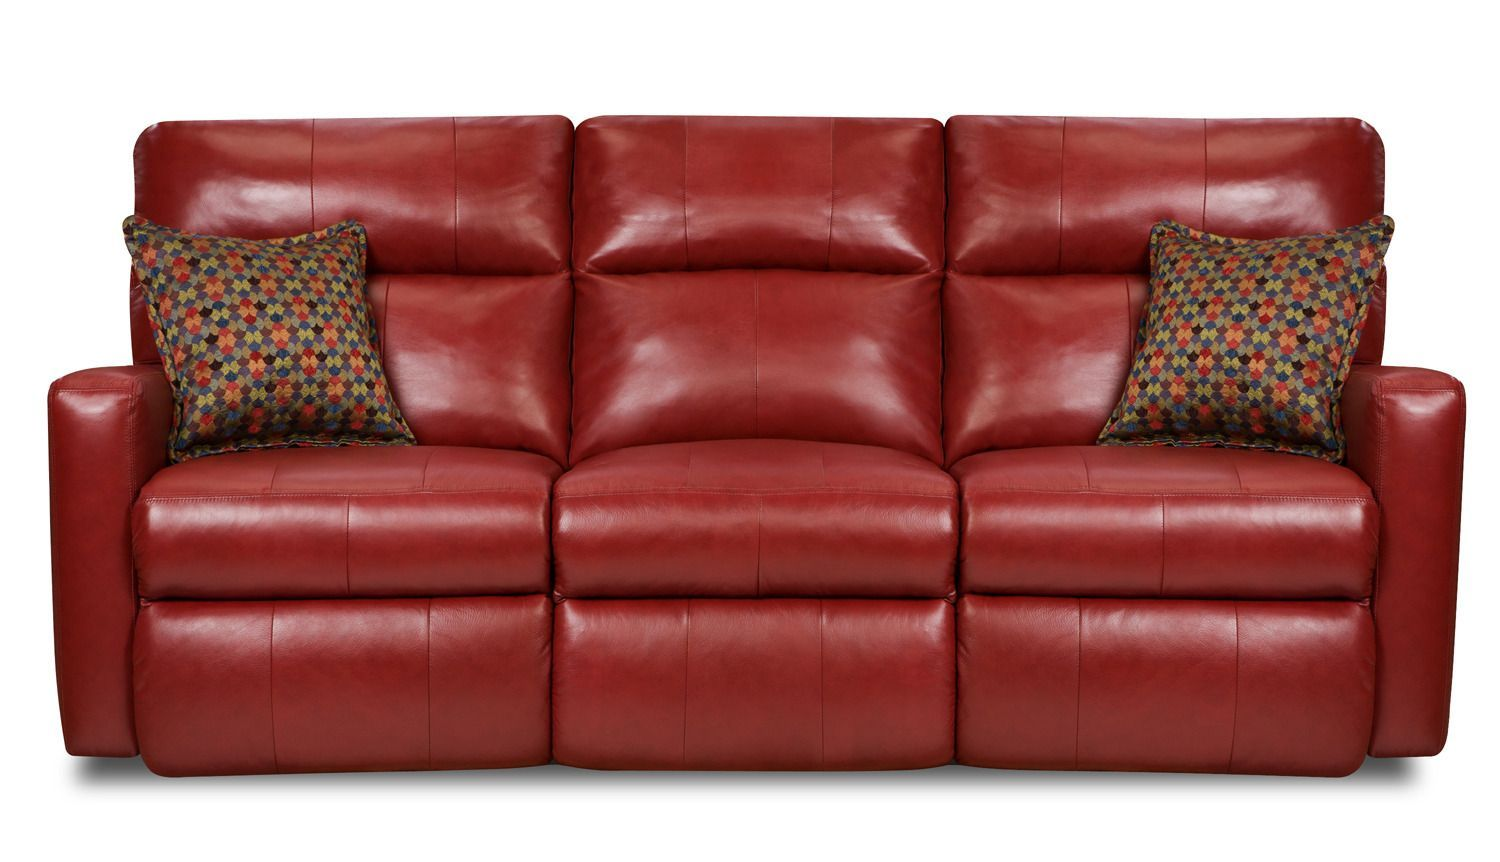 Savannah Double Reclining Sofa With 2 Pillows By Southern Motion Furniture    Home Gallery Stores